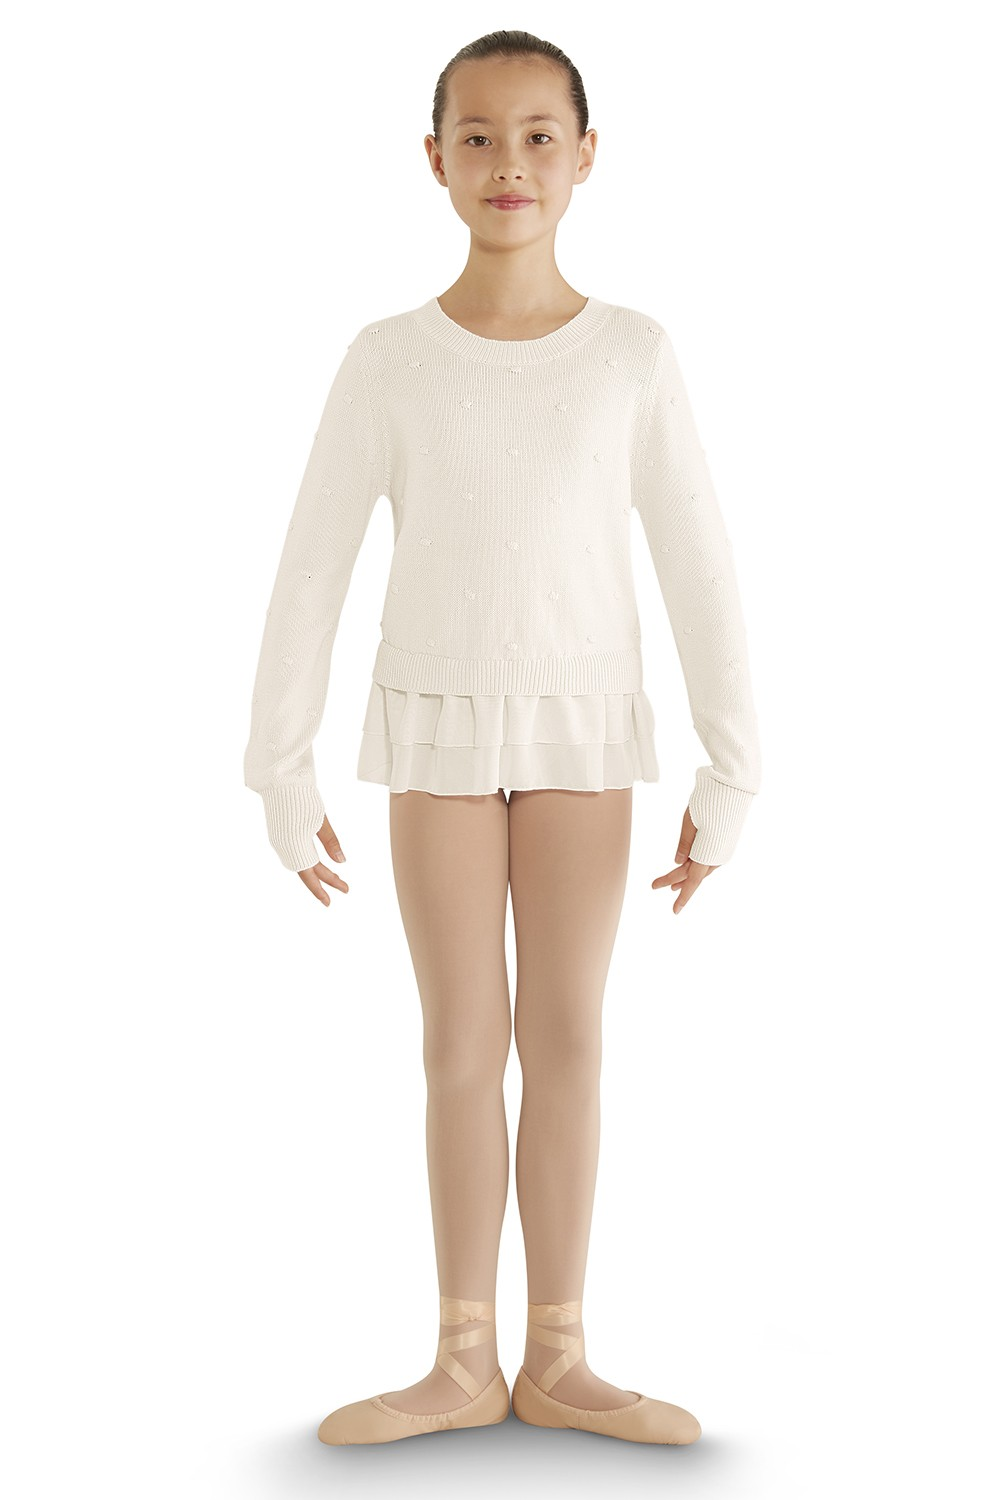 Bubble Knit Long Sleeve Sweater Children's Dance Warmups